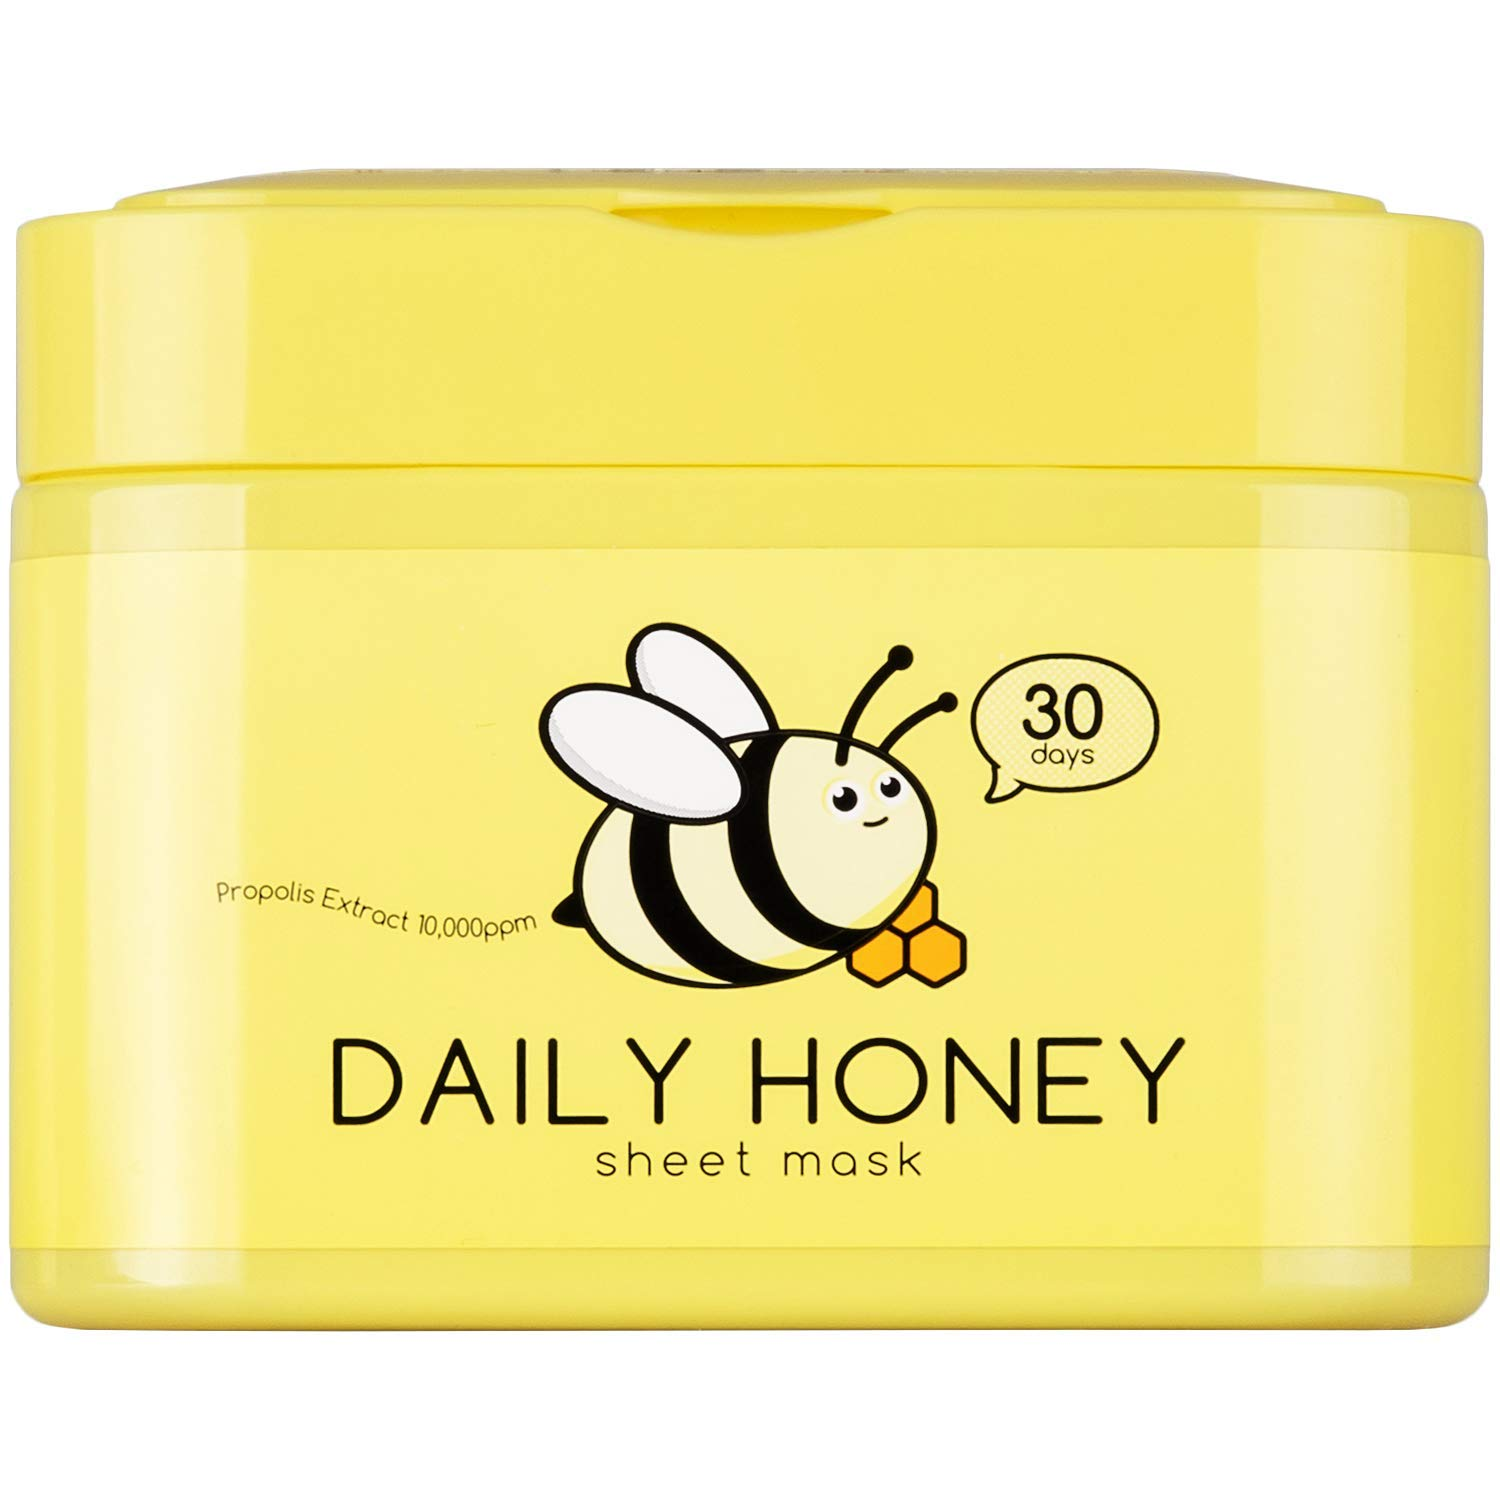 QTBT - QTBT Daily Honey Sheet Mask with Propolis Extract 10000ppm, Pack of 30 Sheets, EWG Verified